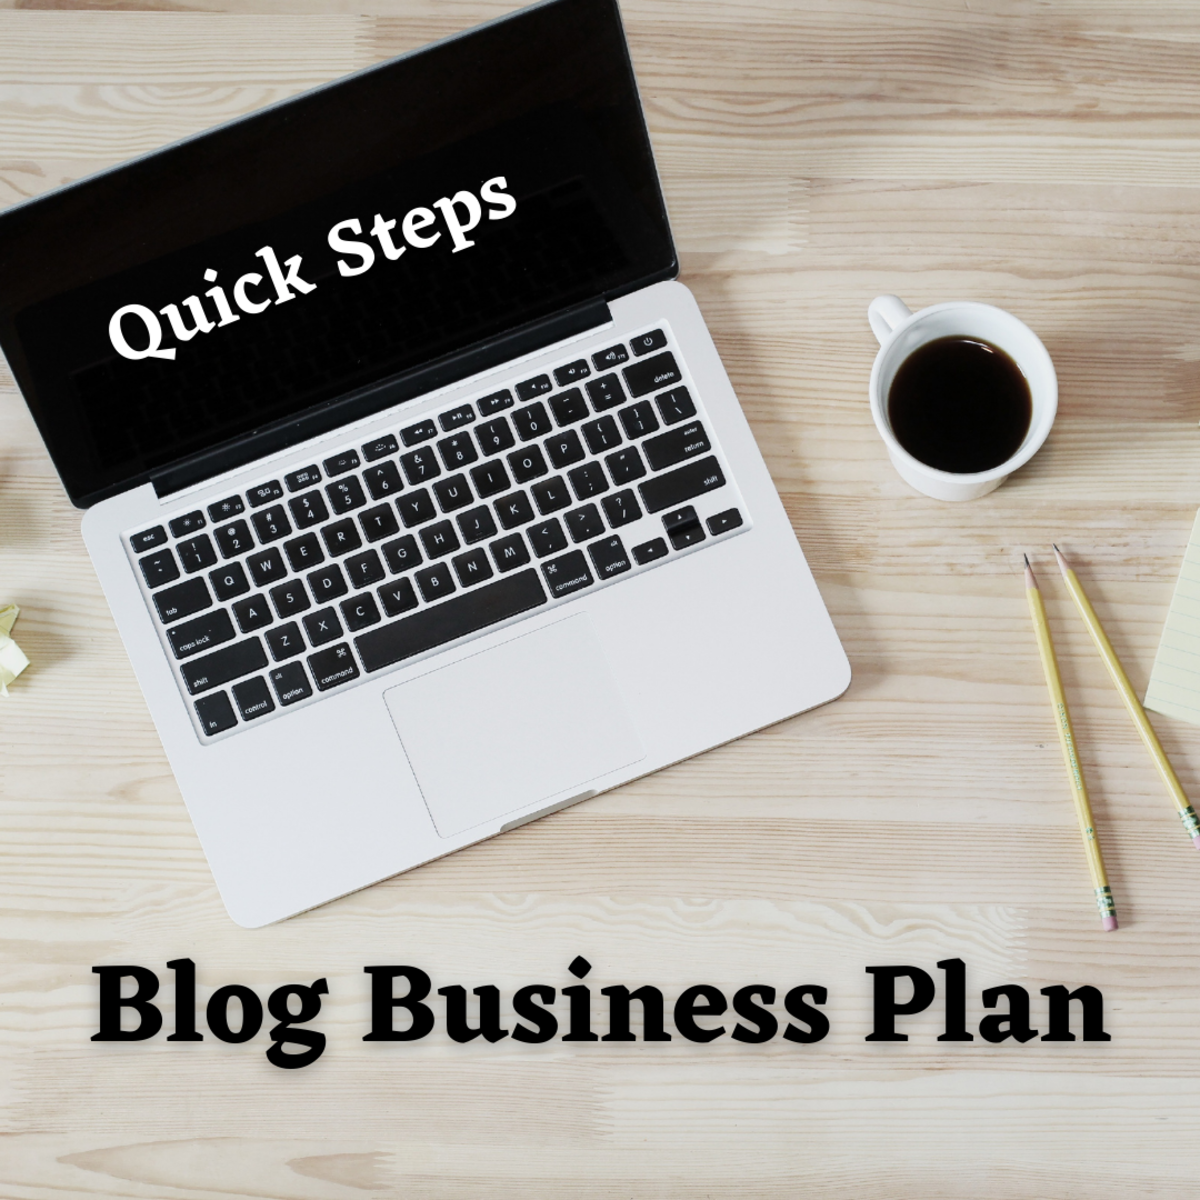 Learn The Quick Steps To Make Your Blog Business Plan